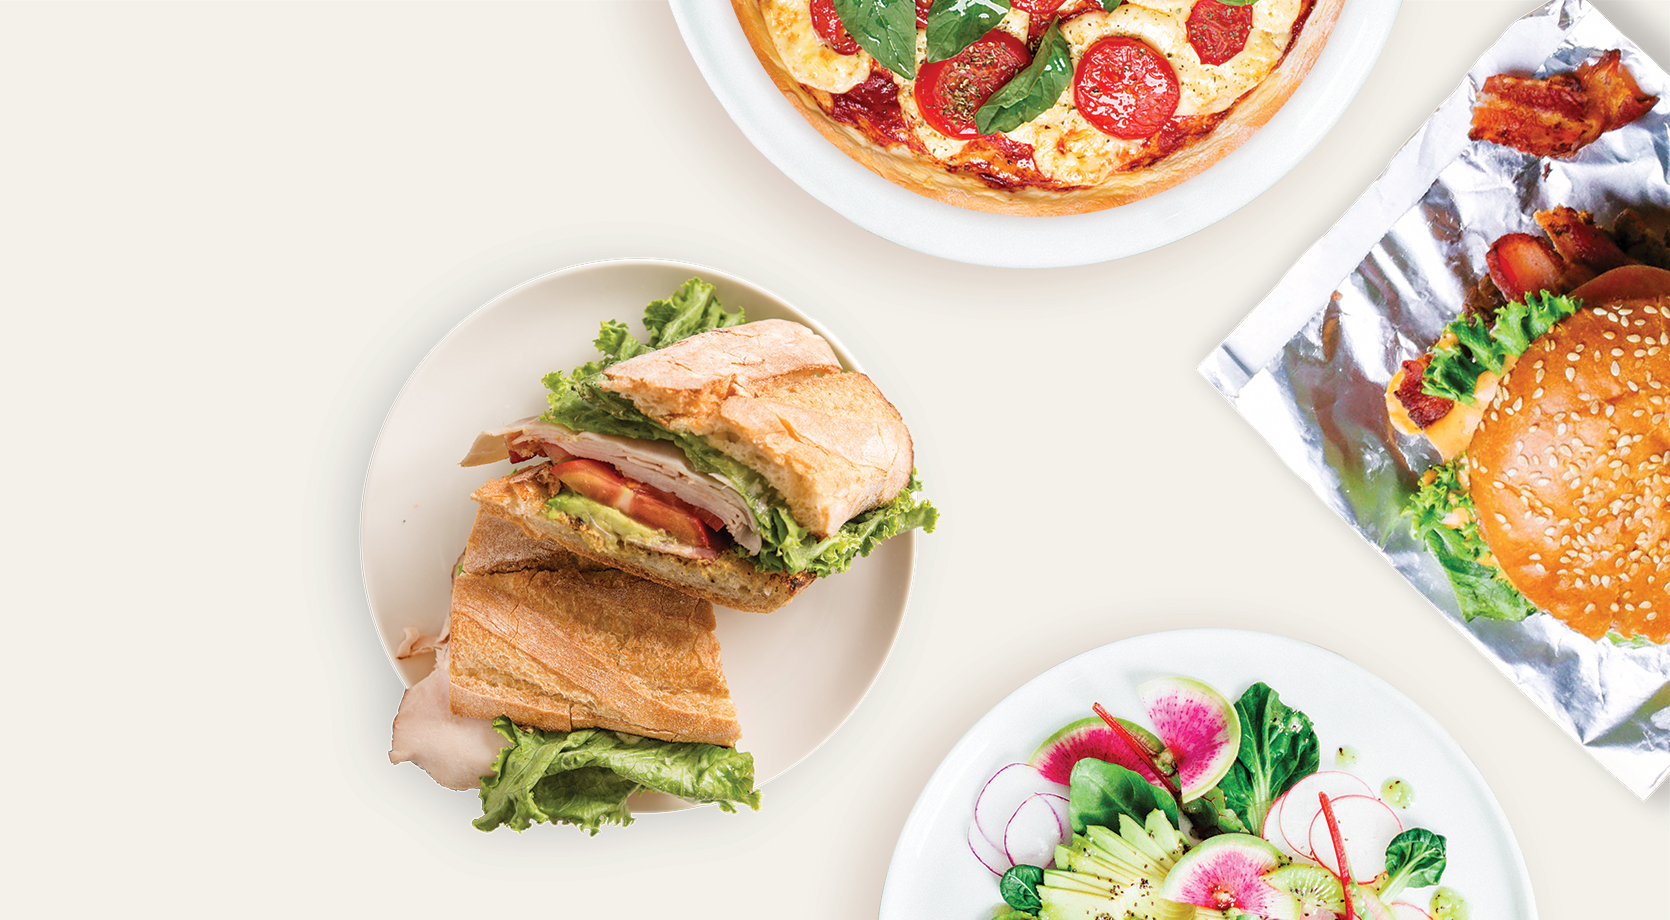 Augusta Food Delivery - 91 Restaurants Near You | DoorDash